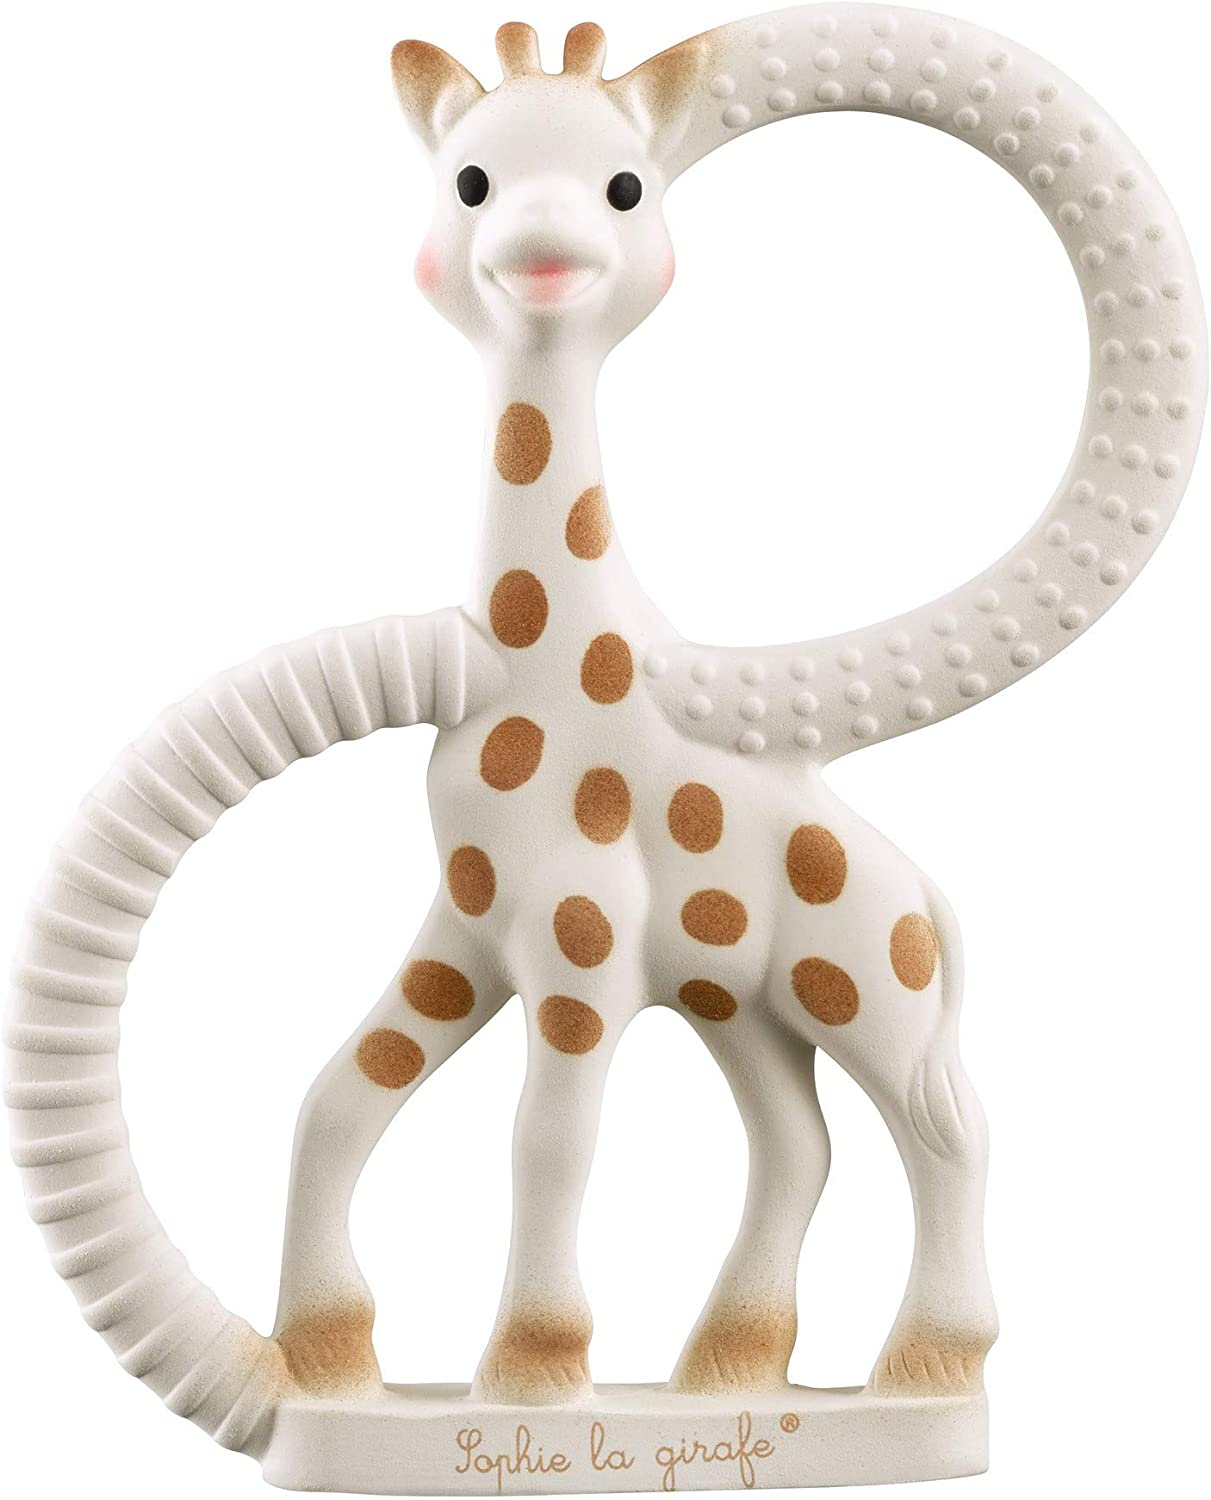 Sophie The Giraffe So Pure Teether Teething Soft Ring Gift 100/% Natural